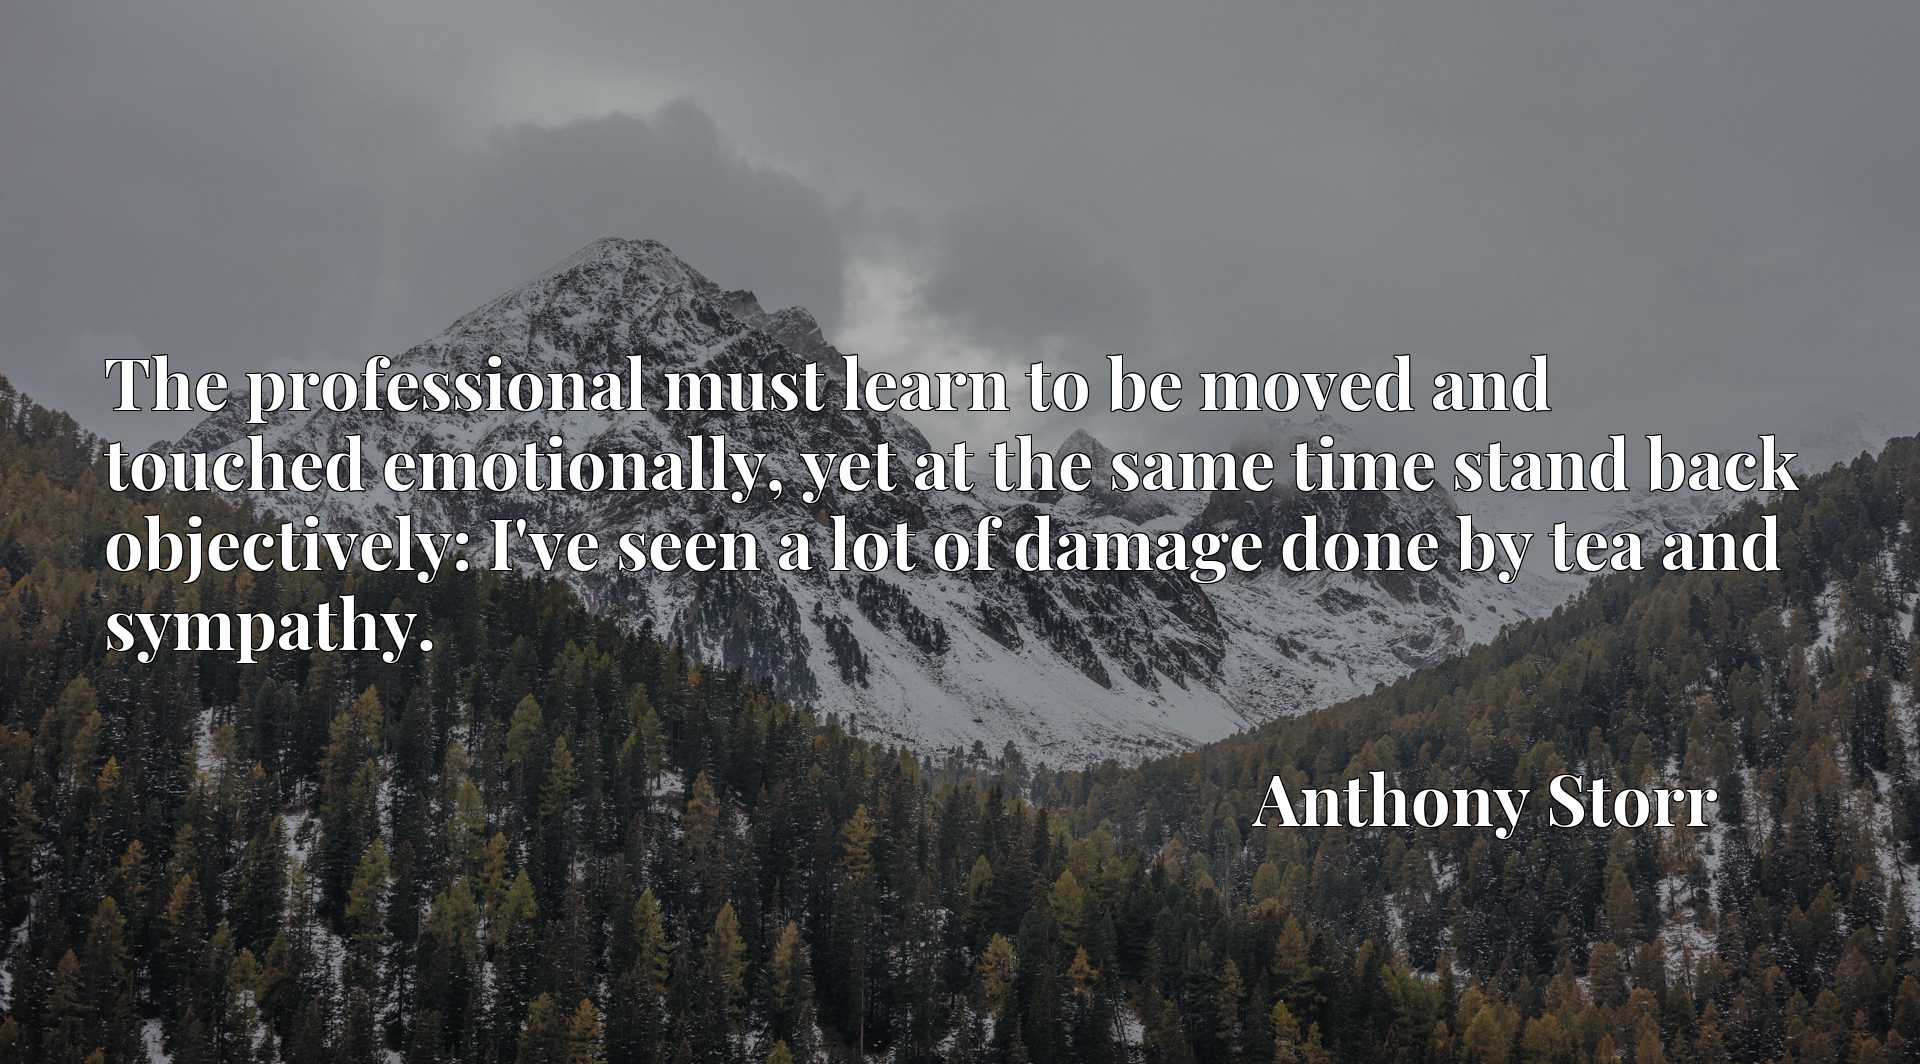 The professional must learn to be moved and touched emotionally, yet at the same time stand back objectively: I've seen a lot of damage done by tea and sympathy.